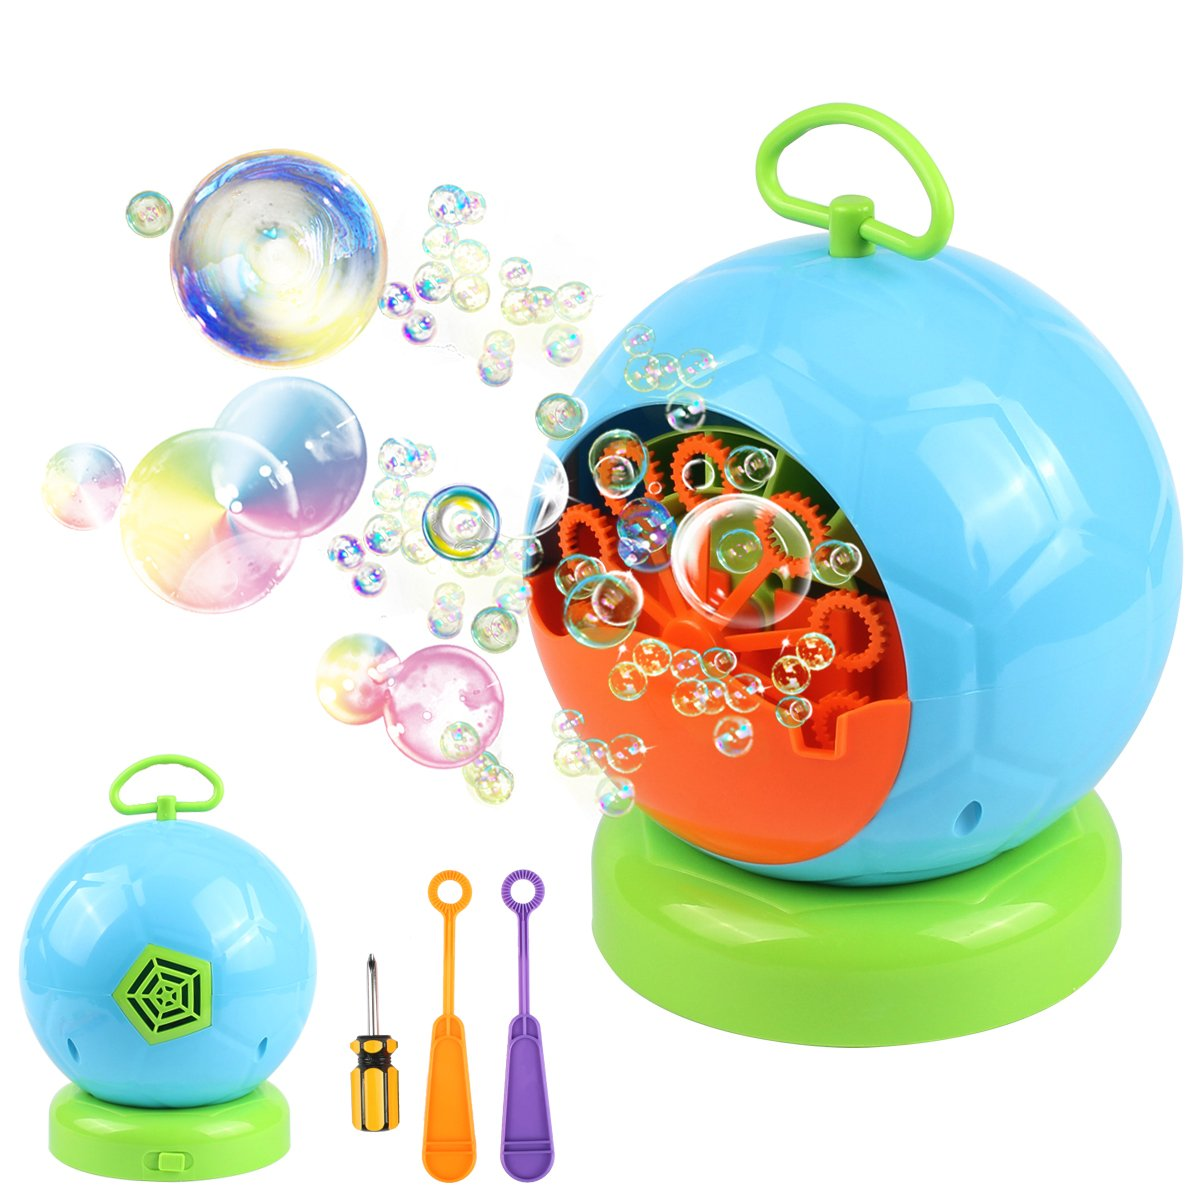 AMOSTING Bubble Machine Automatic Bubbles Blower for Kids Outdoor Toys Party Supplies Bubble Maker with Bubble Wands by AMOSTING (Image #1)